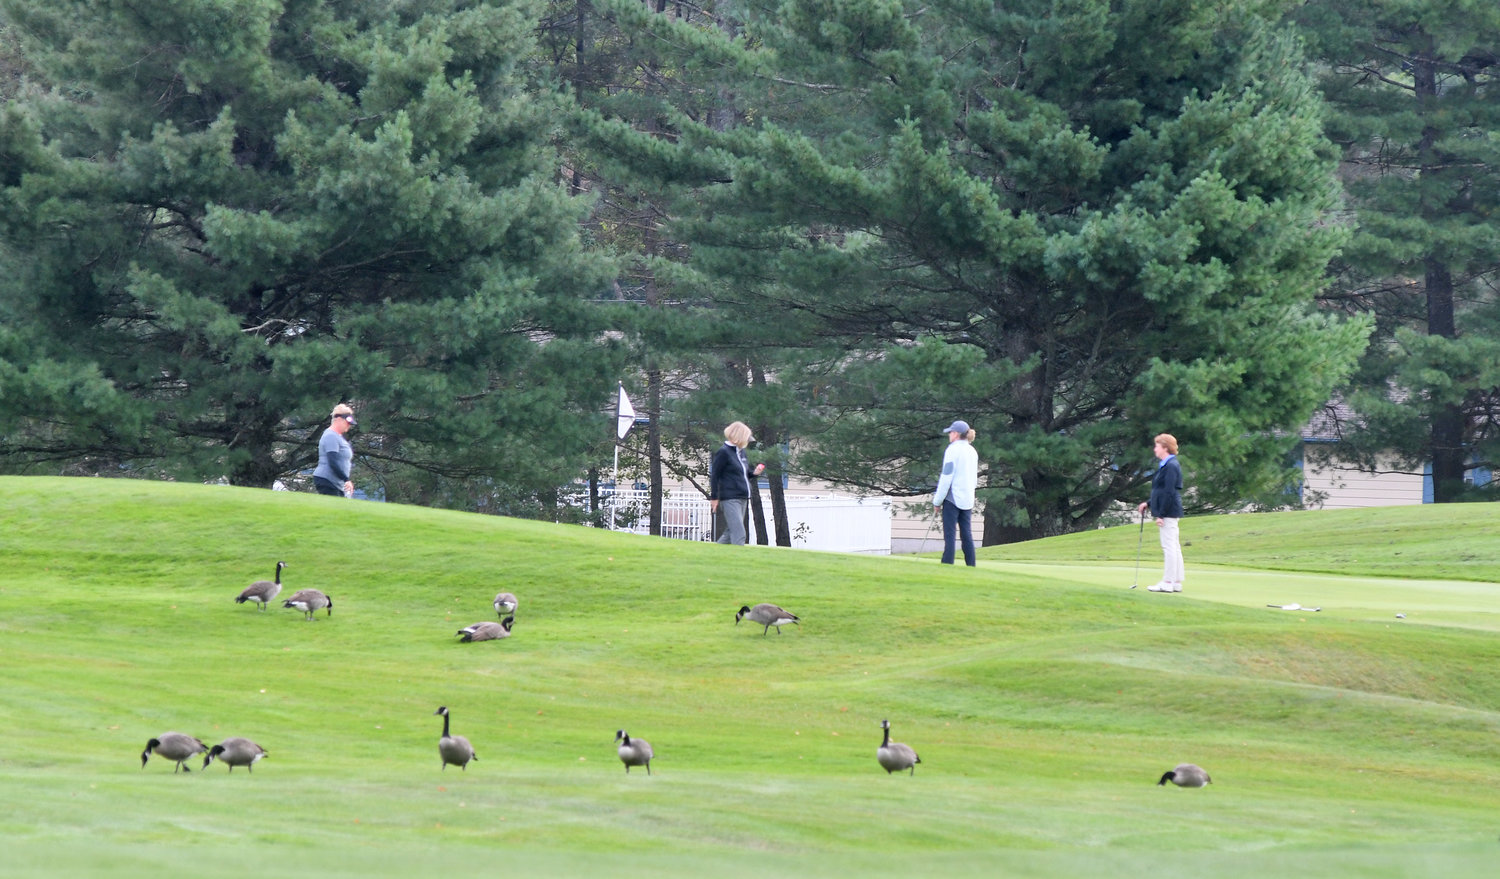 ON THE GREEN — Golfers on a green on the front nine at Thendara Golf Club with geese sitting in the foreground. The course is home to a lot of wildlife, including these geese and some deer. There have even been bear sightings at the course.